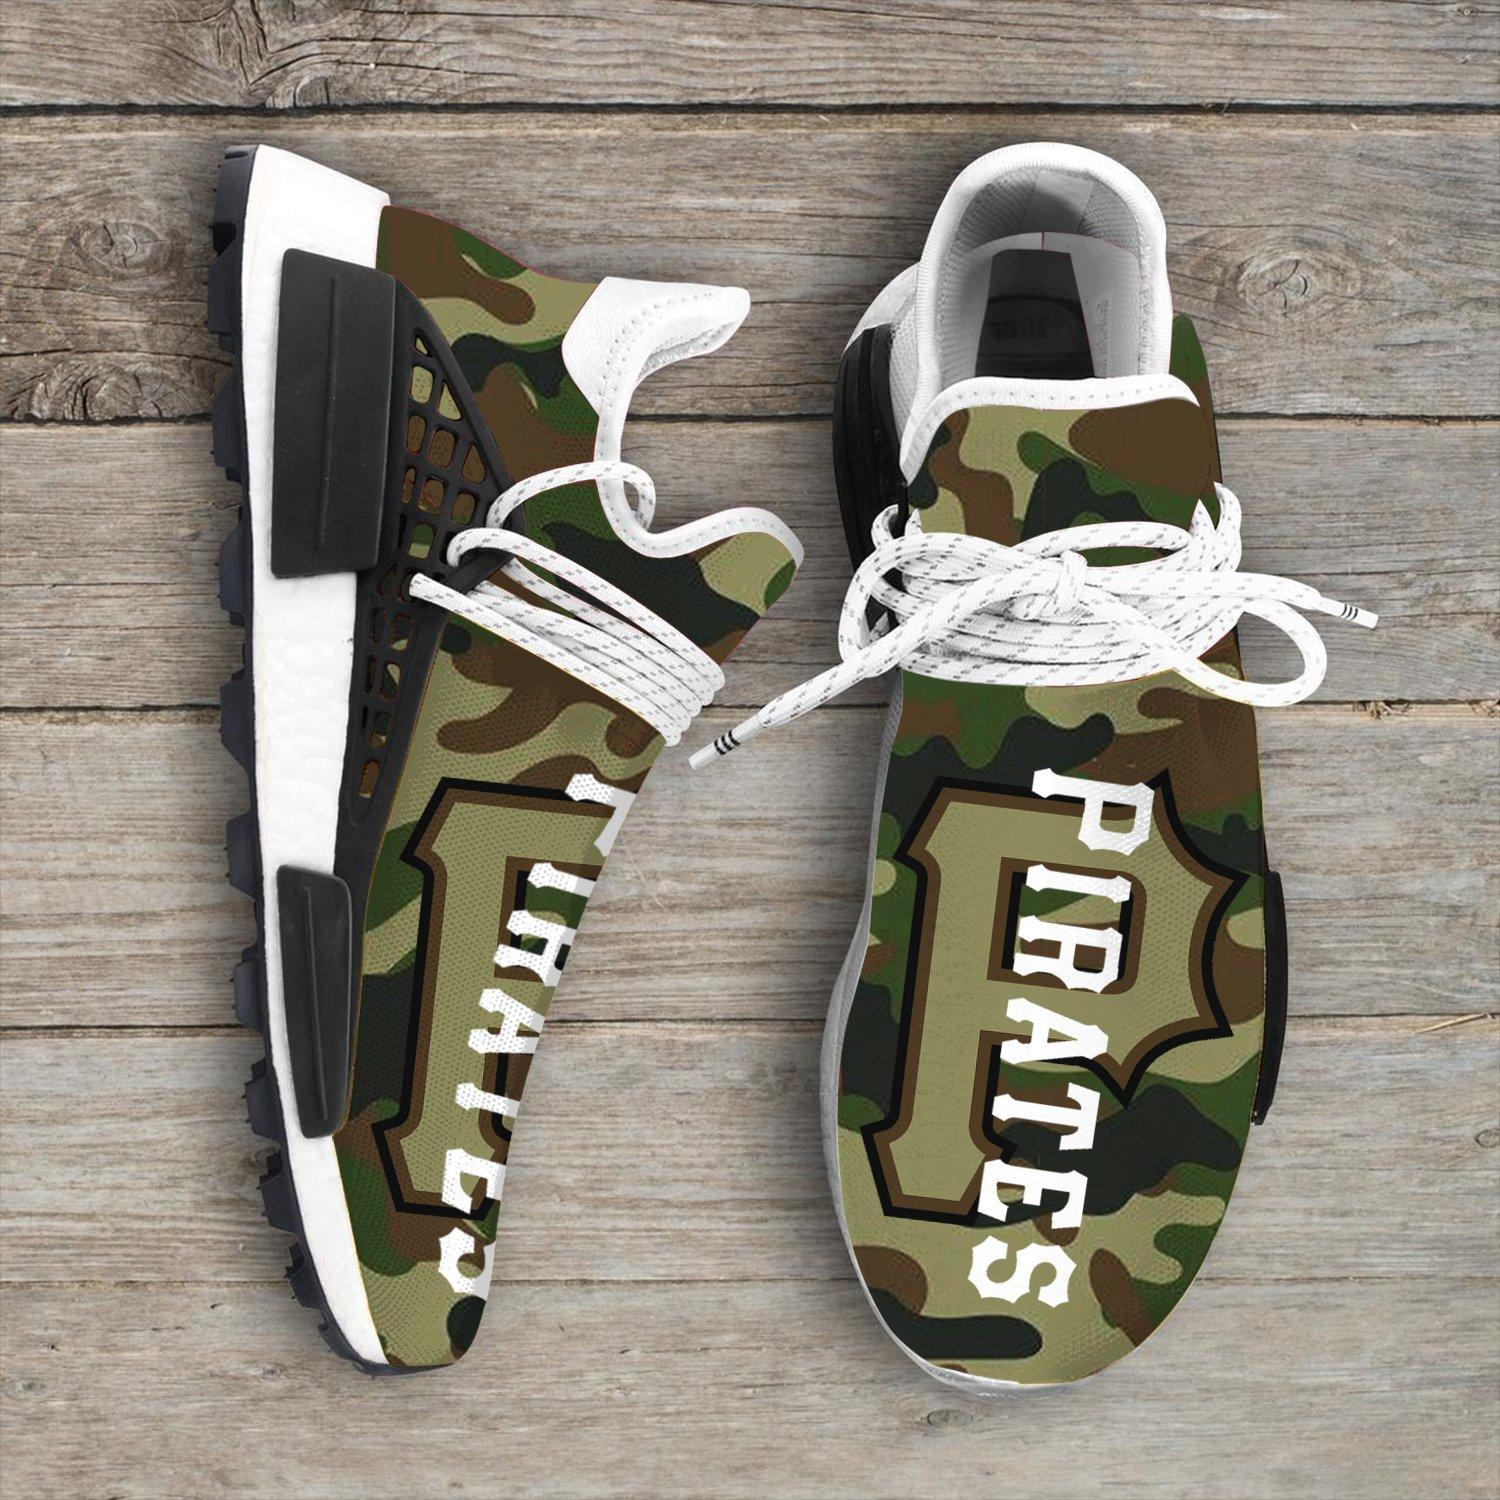 Camo Camouflage Pittsburgh Pirates Mlb Sport Teams NMD Human Shoes